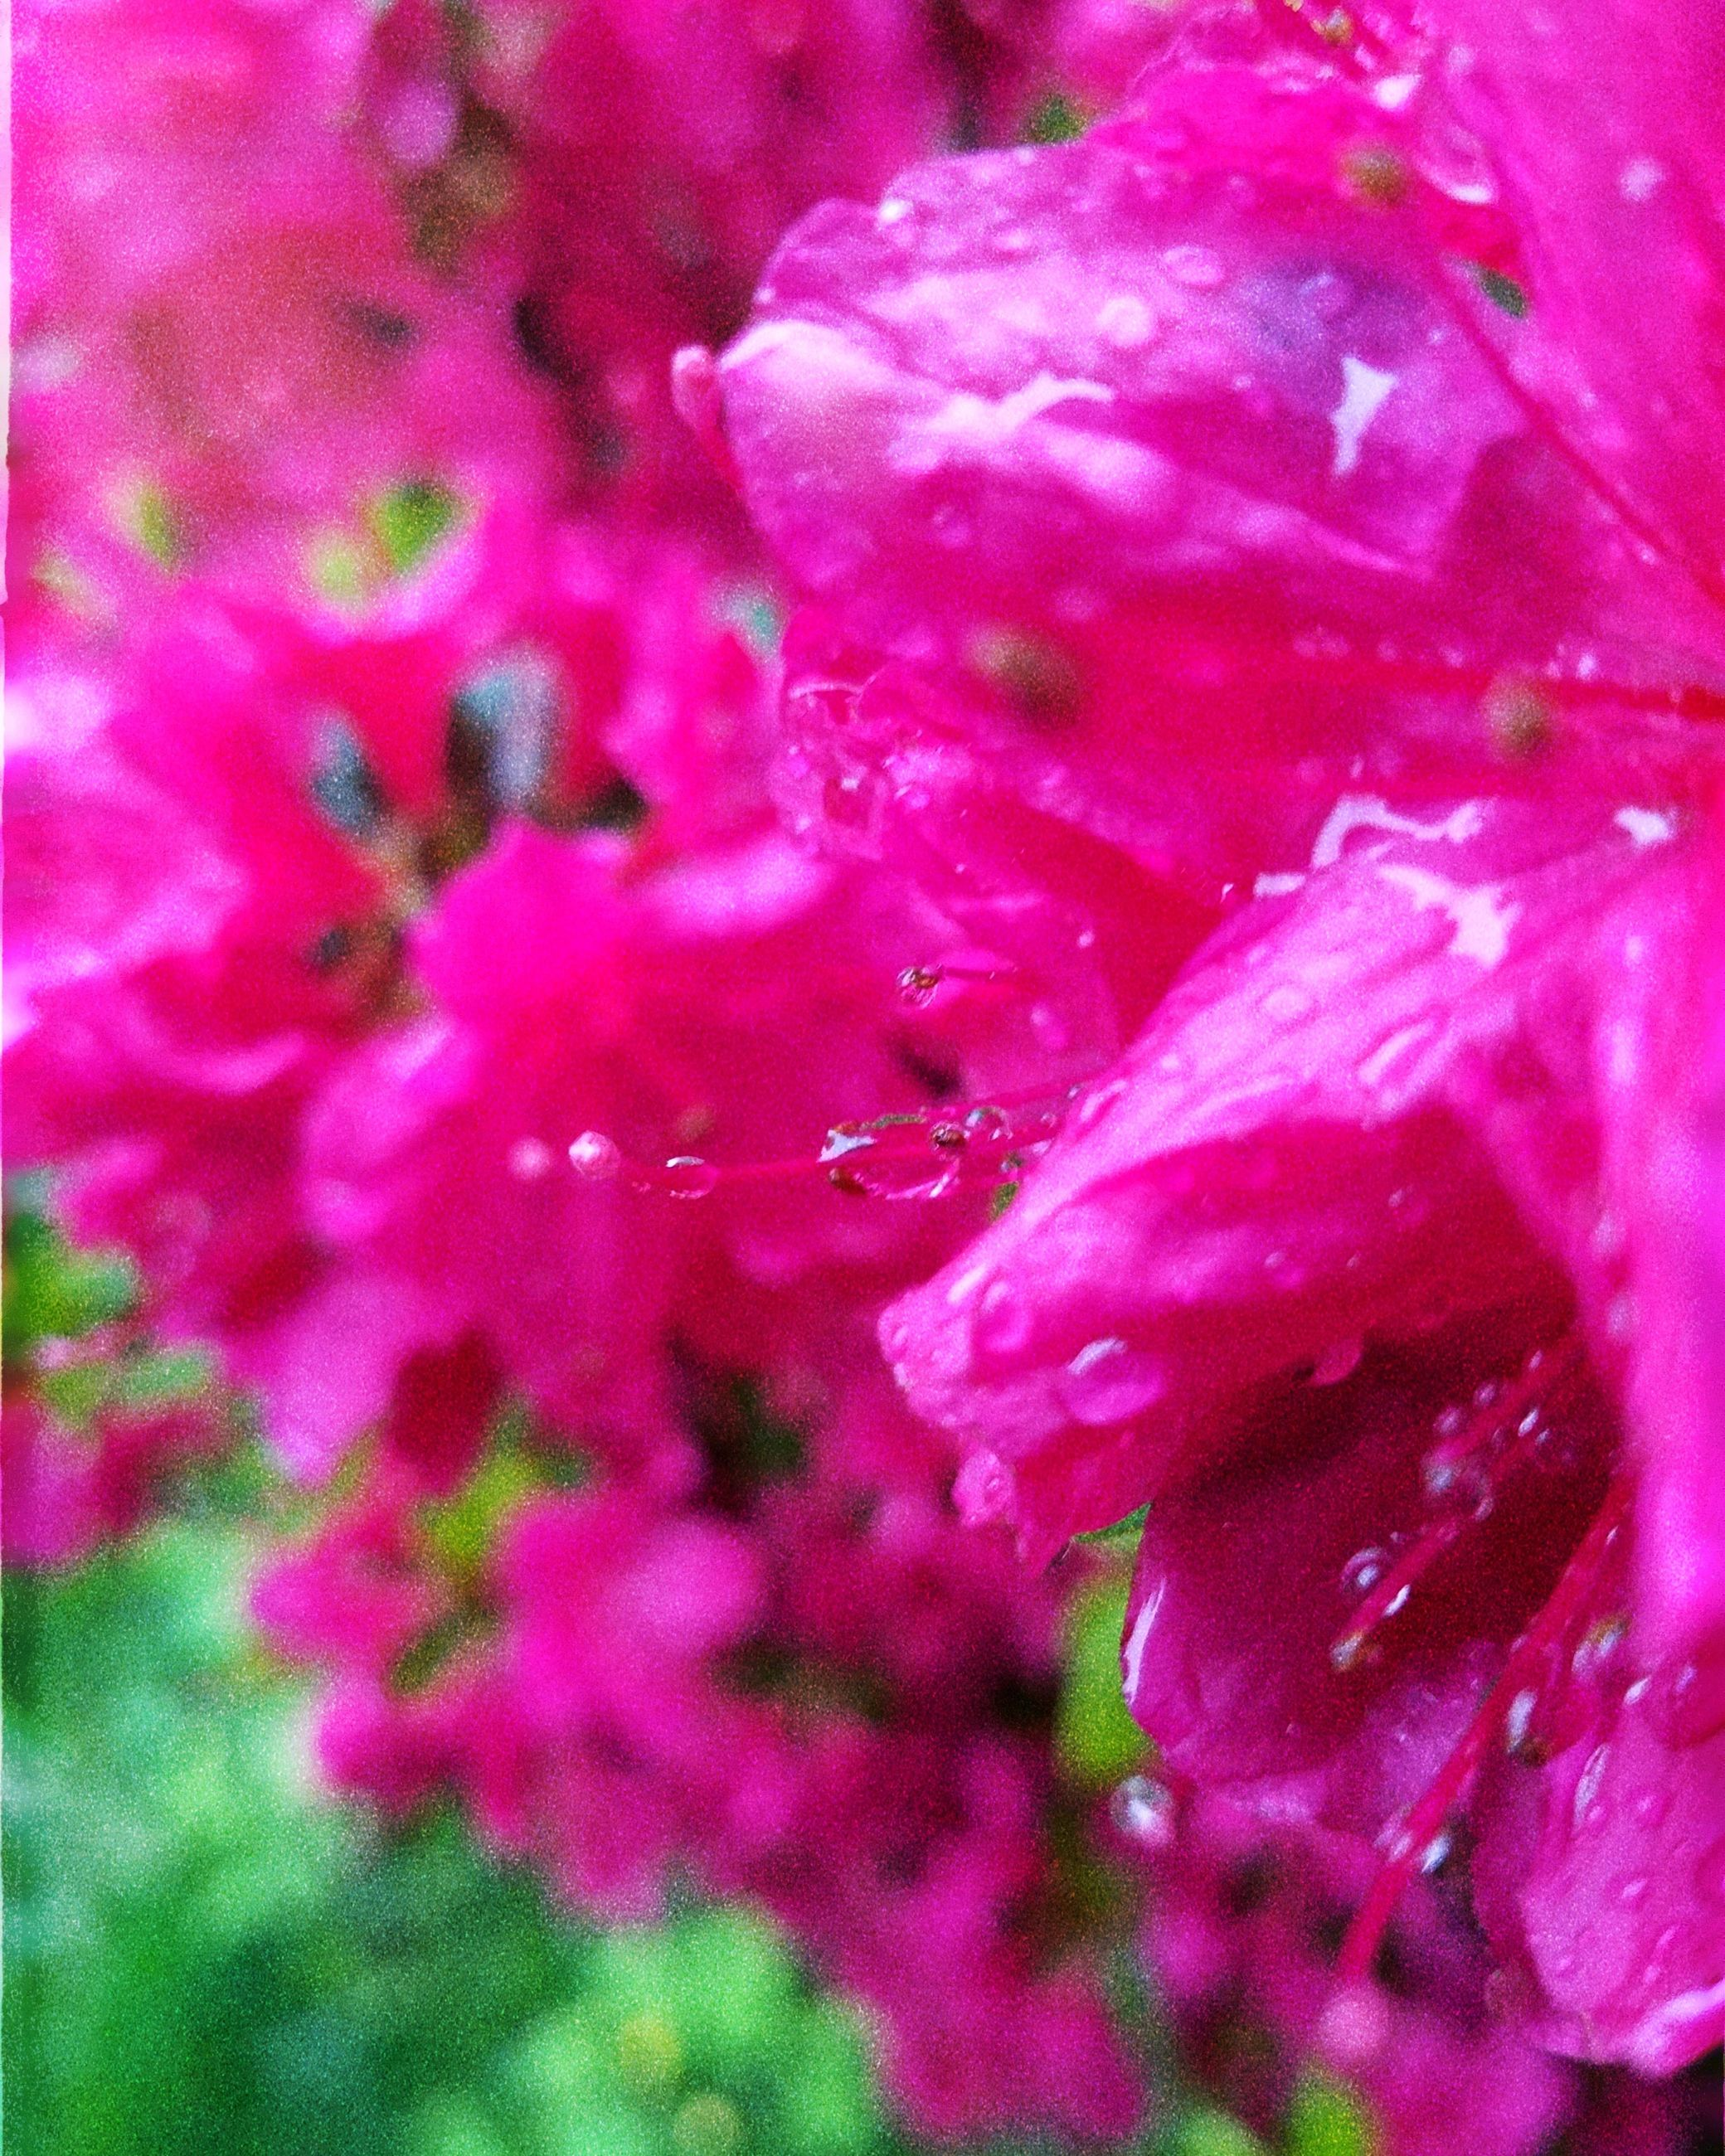 flower, flowering plant, freshness, growth, plant, pink color, petal, fragility, beauty in nature, vulnerability, close-up, inflorescence, no people, flower head, nature, full frame, backgrounds, day, selective focus, outdoors, springtime, pollen, raindrop, dew, purple